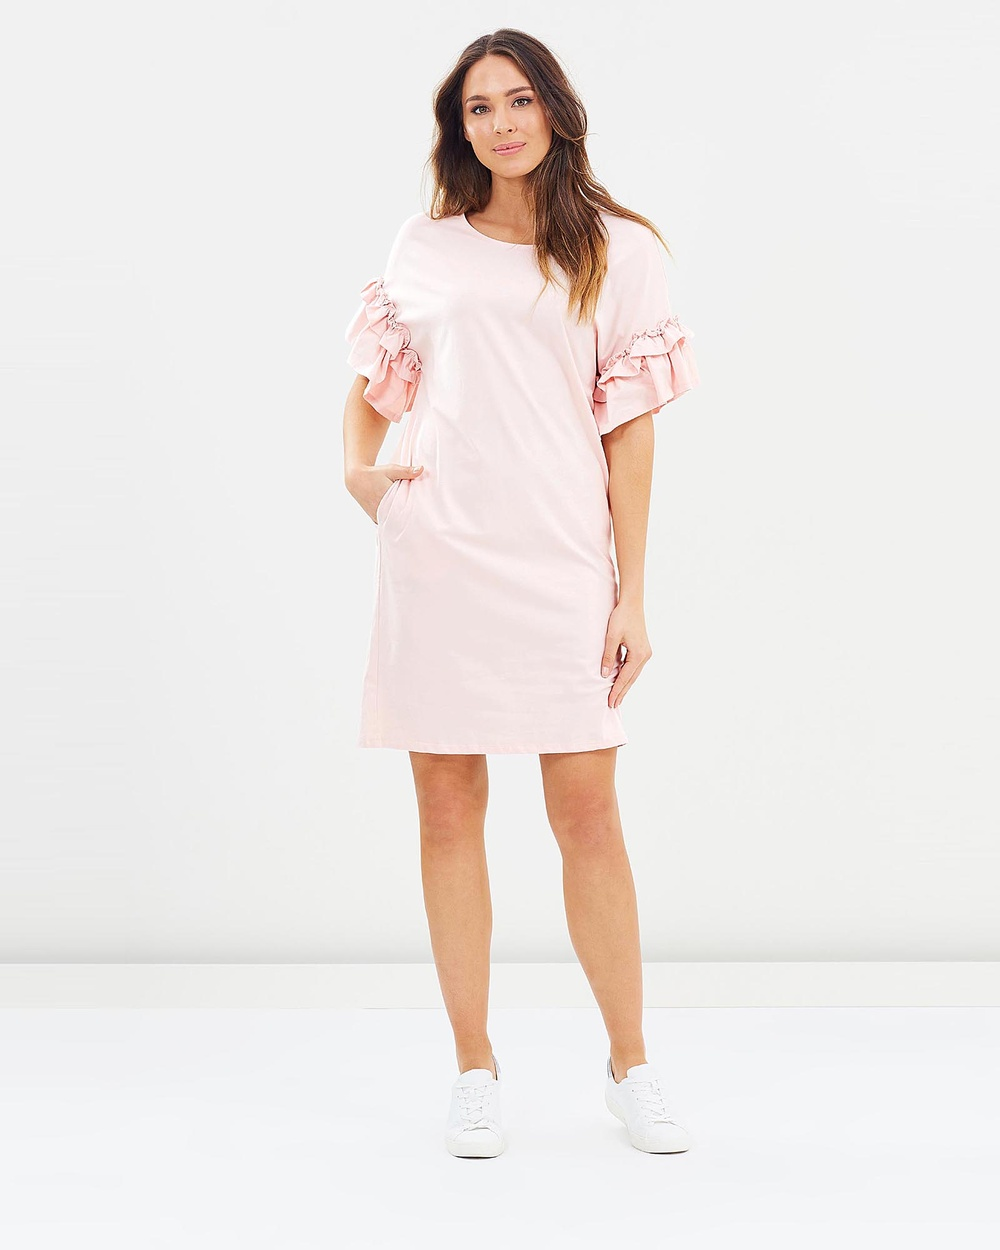 Lincoln St The Frill Cuff Dress Dresses Smoke Pink The Frill Cuff Dress